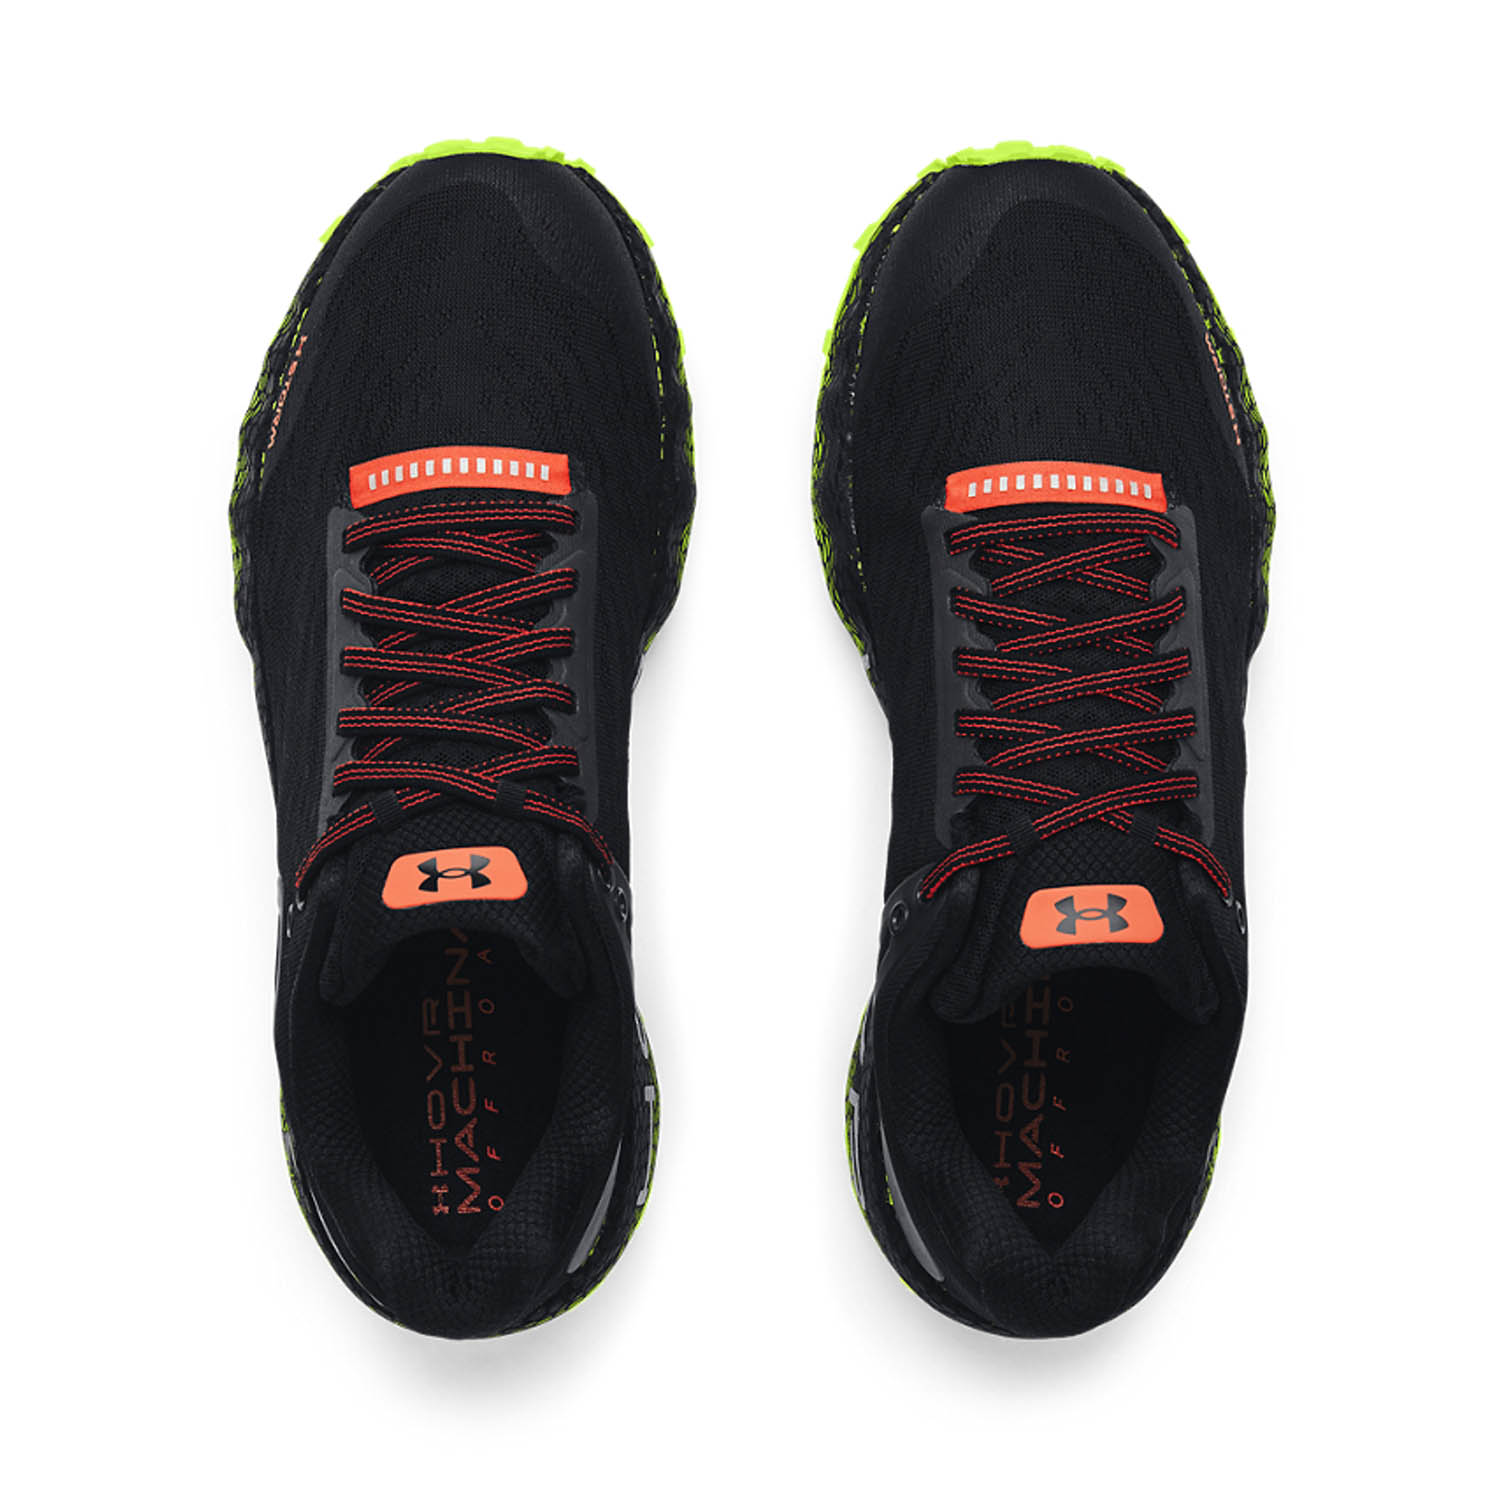 Under Armour Hovr Machina Off Road - Black/High Vis Yellow